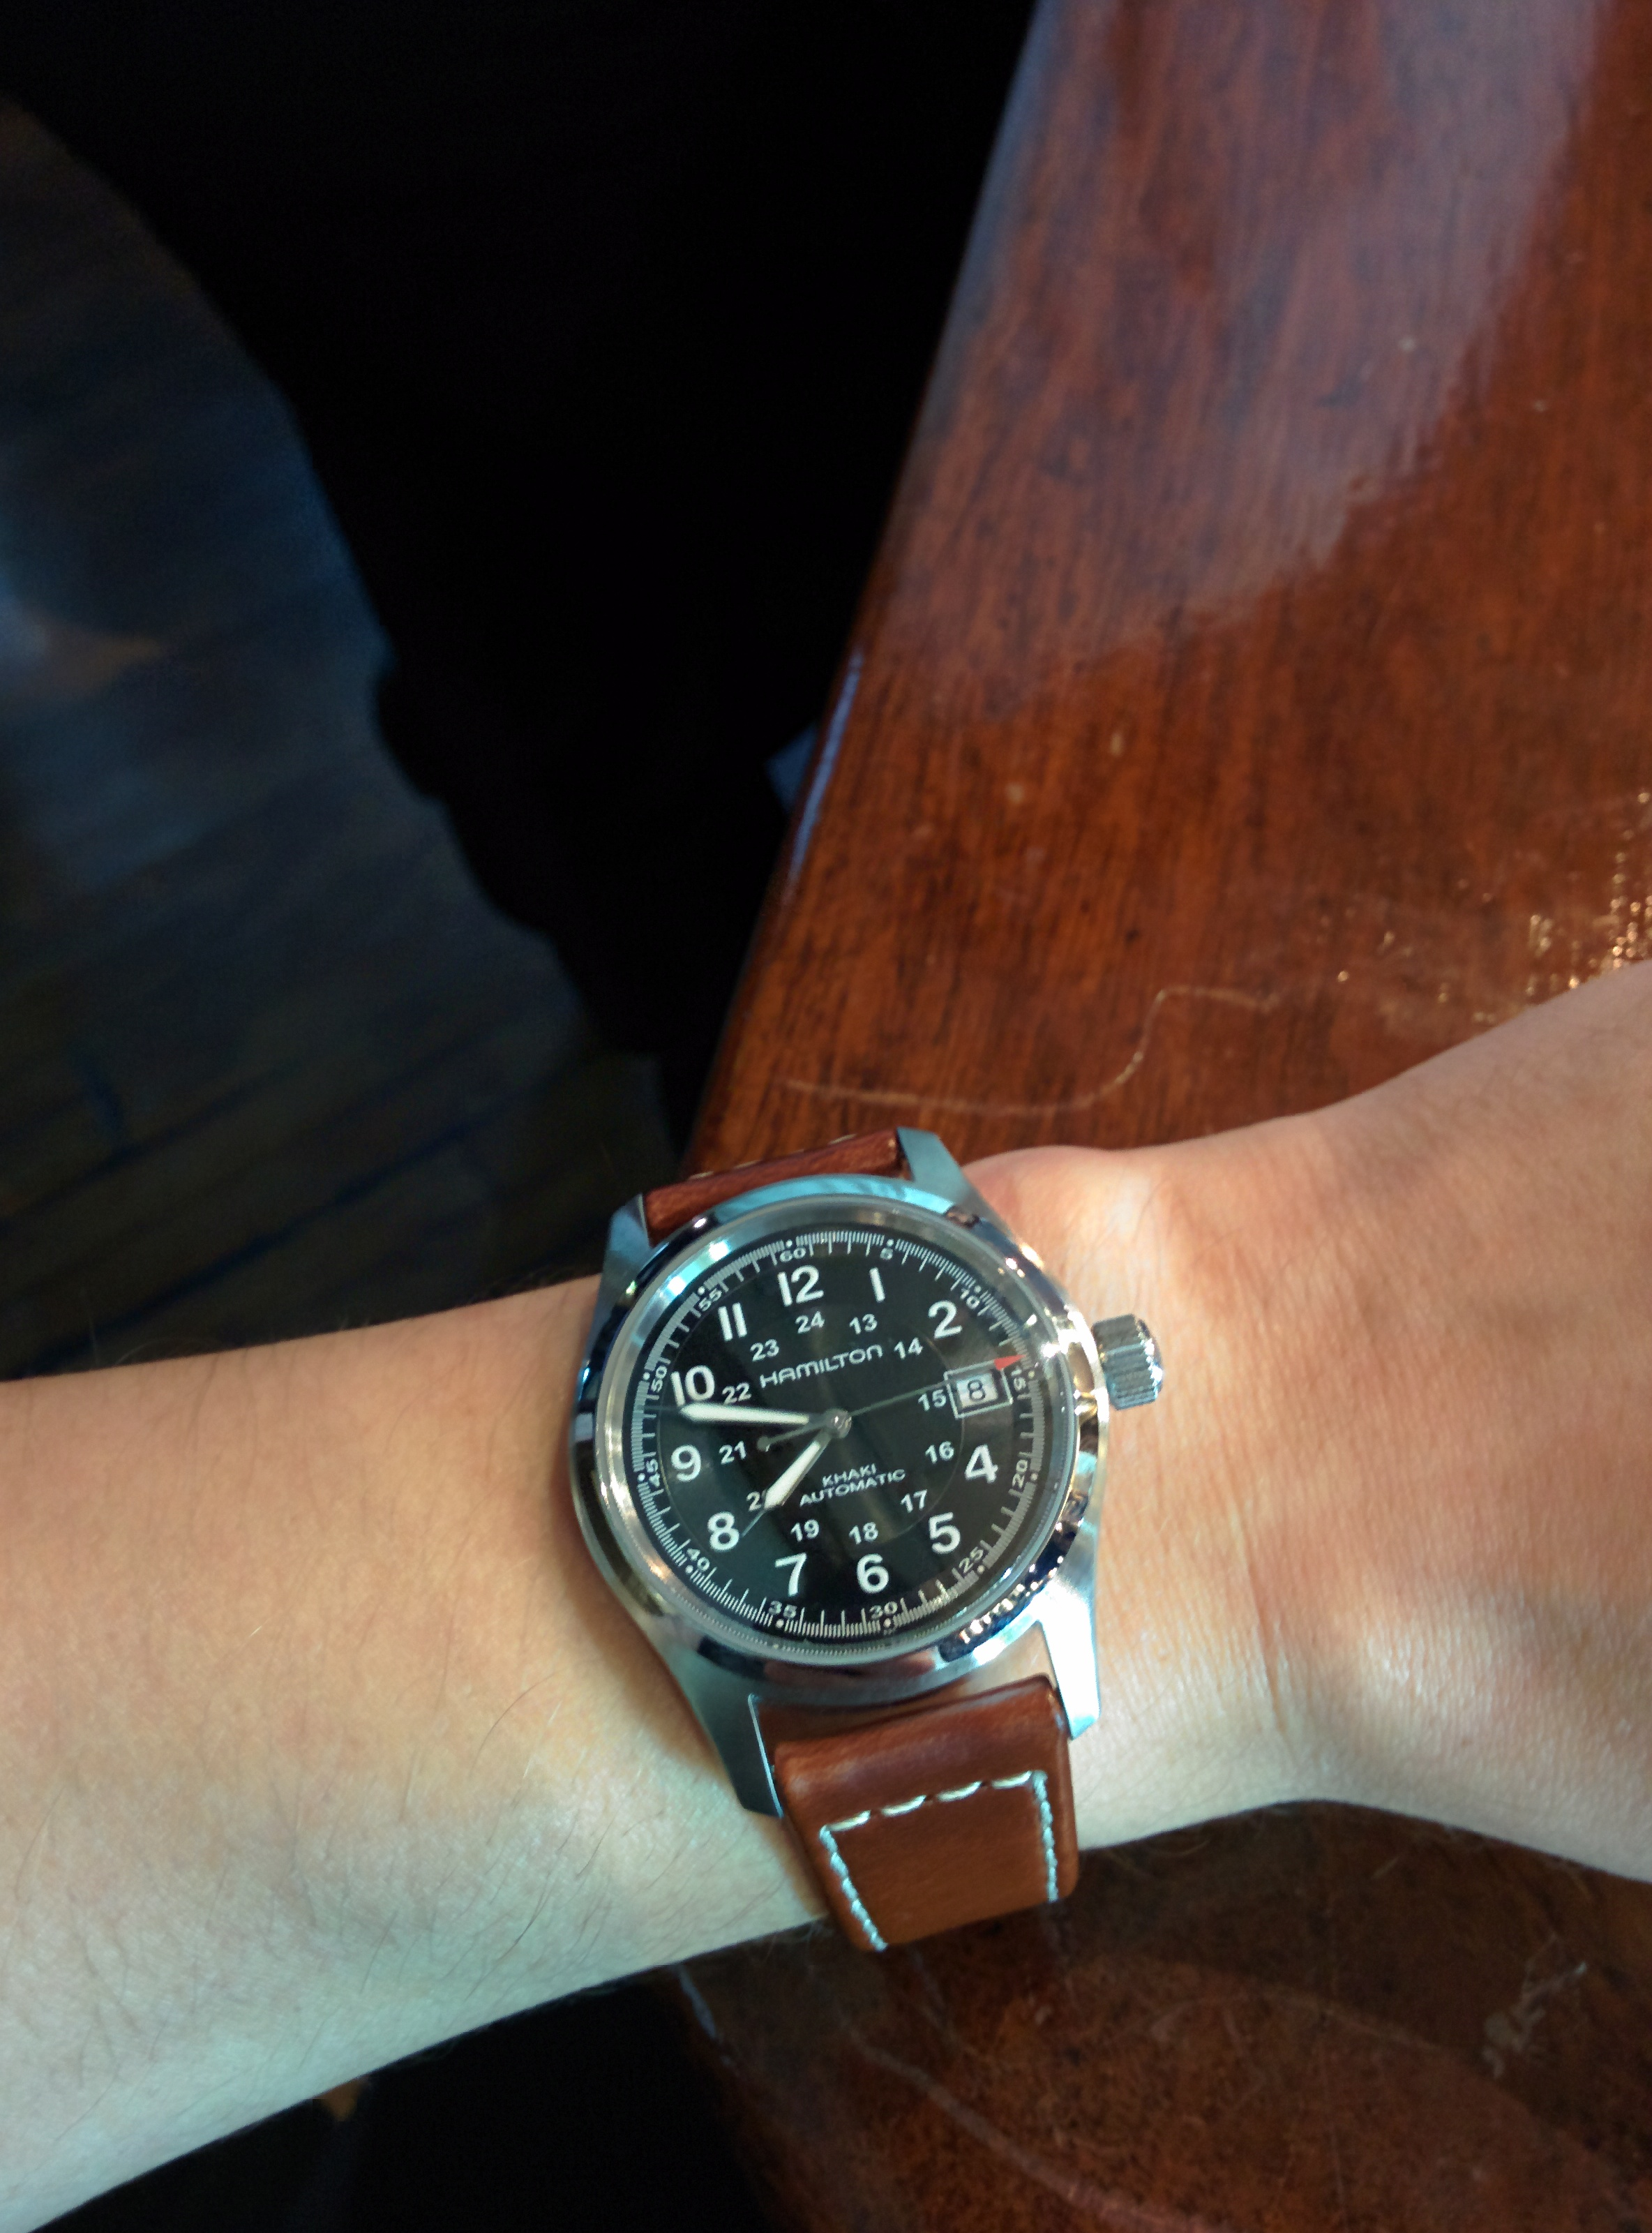 7ece5b84b The bezel and the leather are very well finished. Just watch out for the  size, this watch is quite small so it fits people with very small wrists  skinny, ...